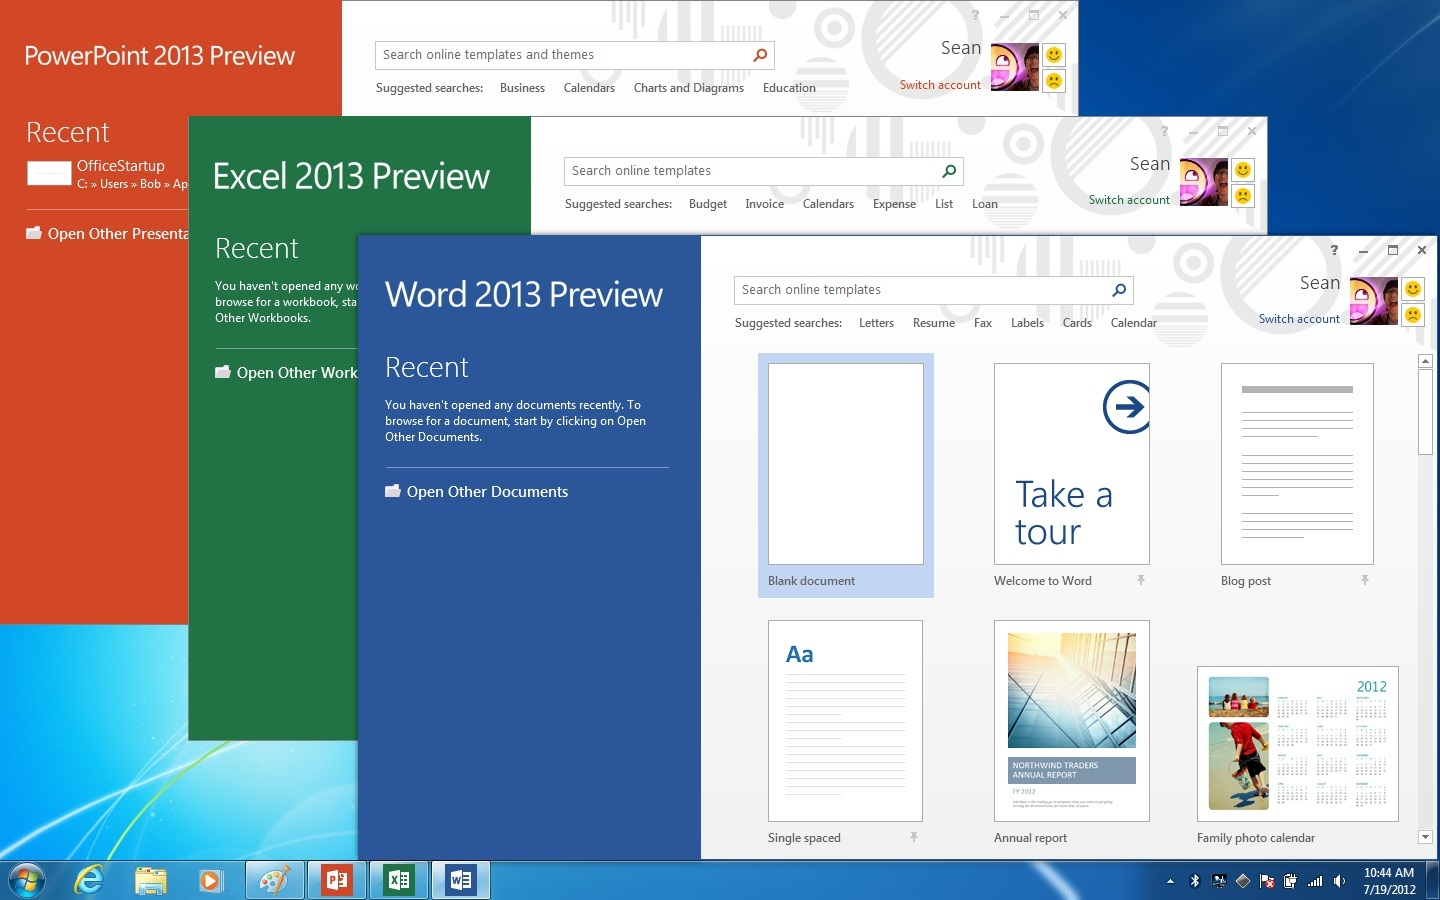 Microsoft new Office 2013 & 365 suite